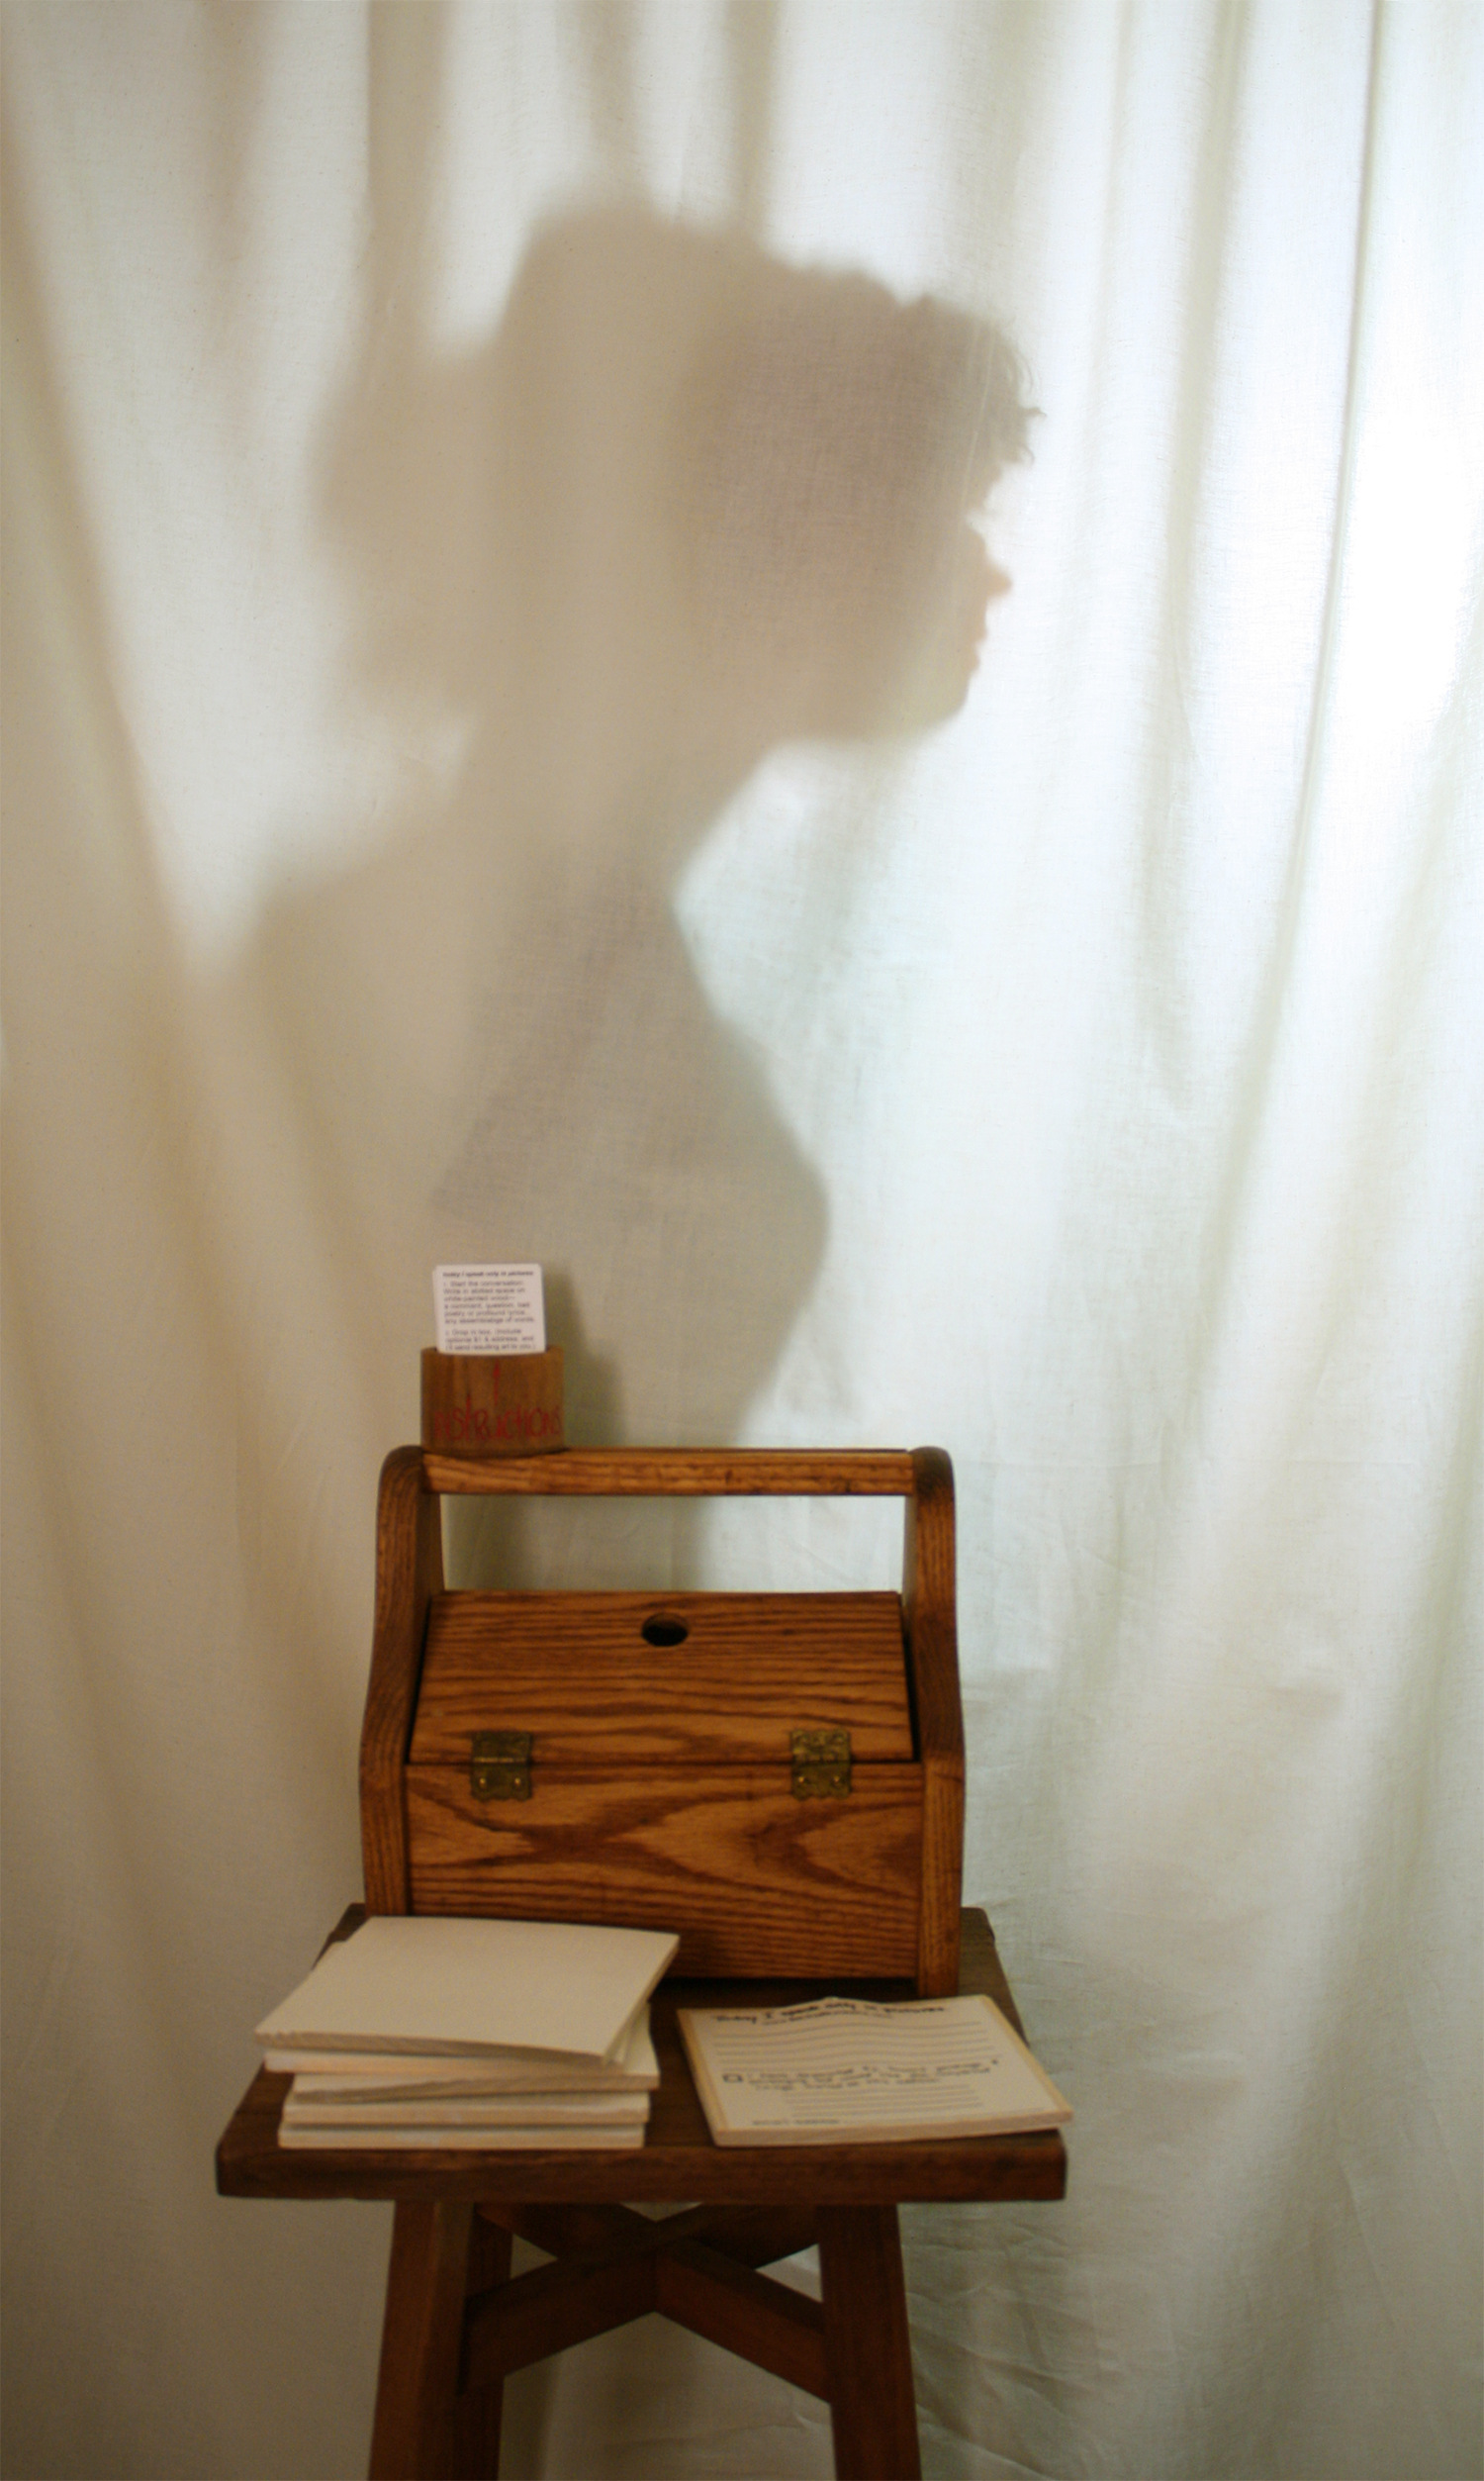 Today speak only in pictures , 2013, artist's shadow on workspace curtain